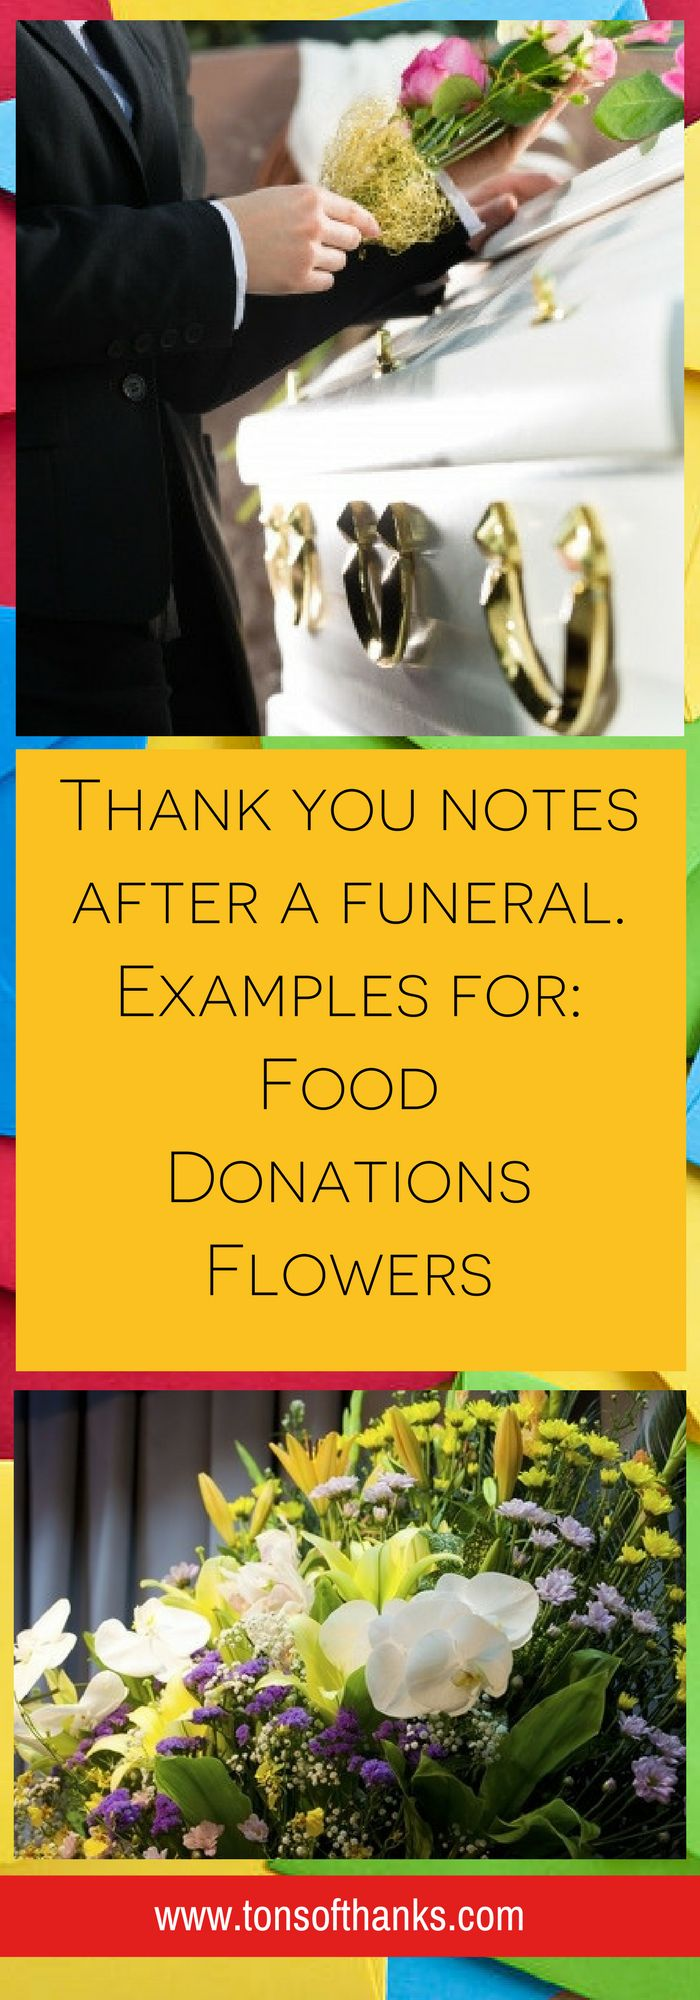 17 Best Ideas About Funeral Thank You Notes On Pinterest